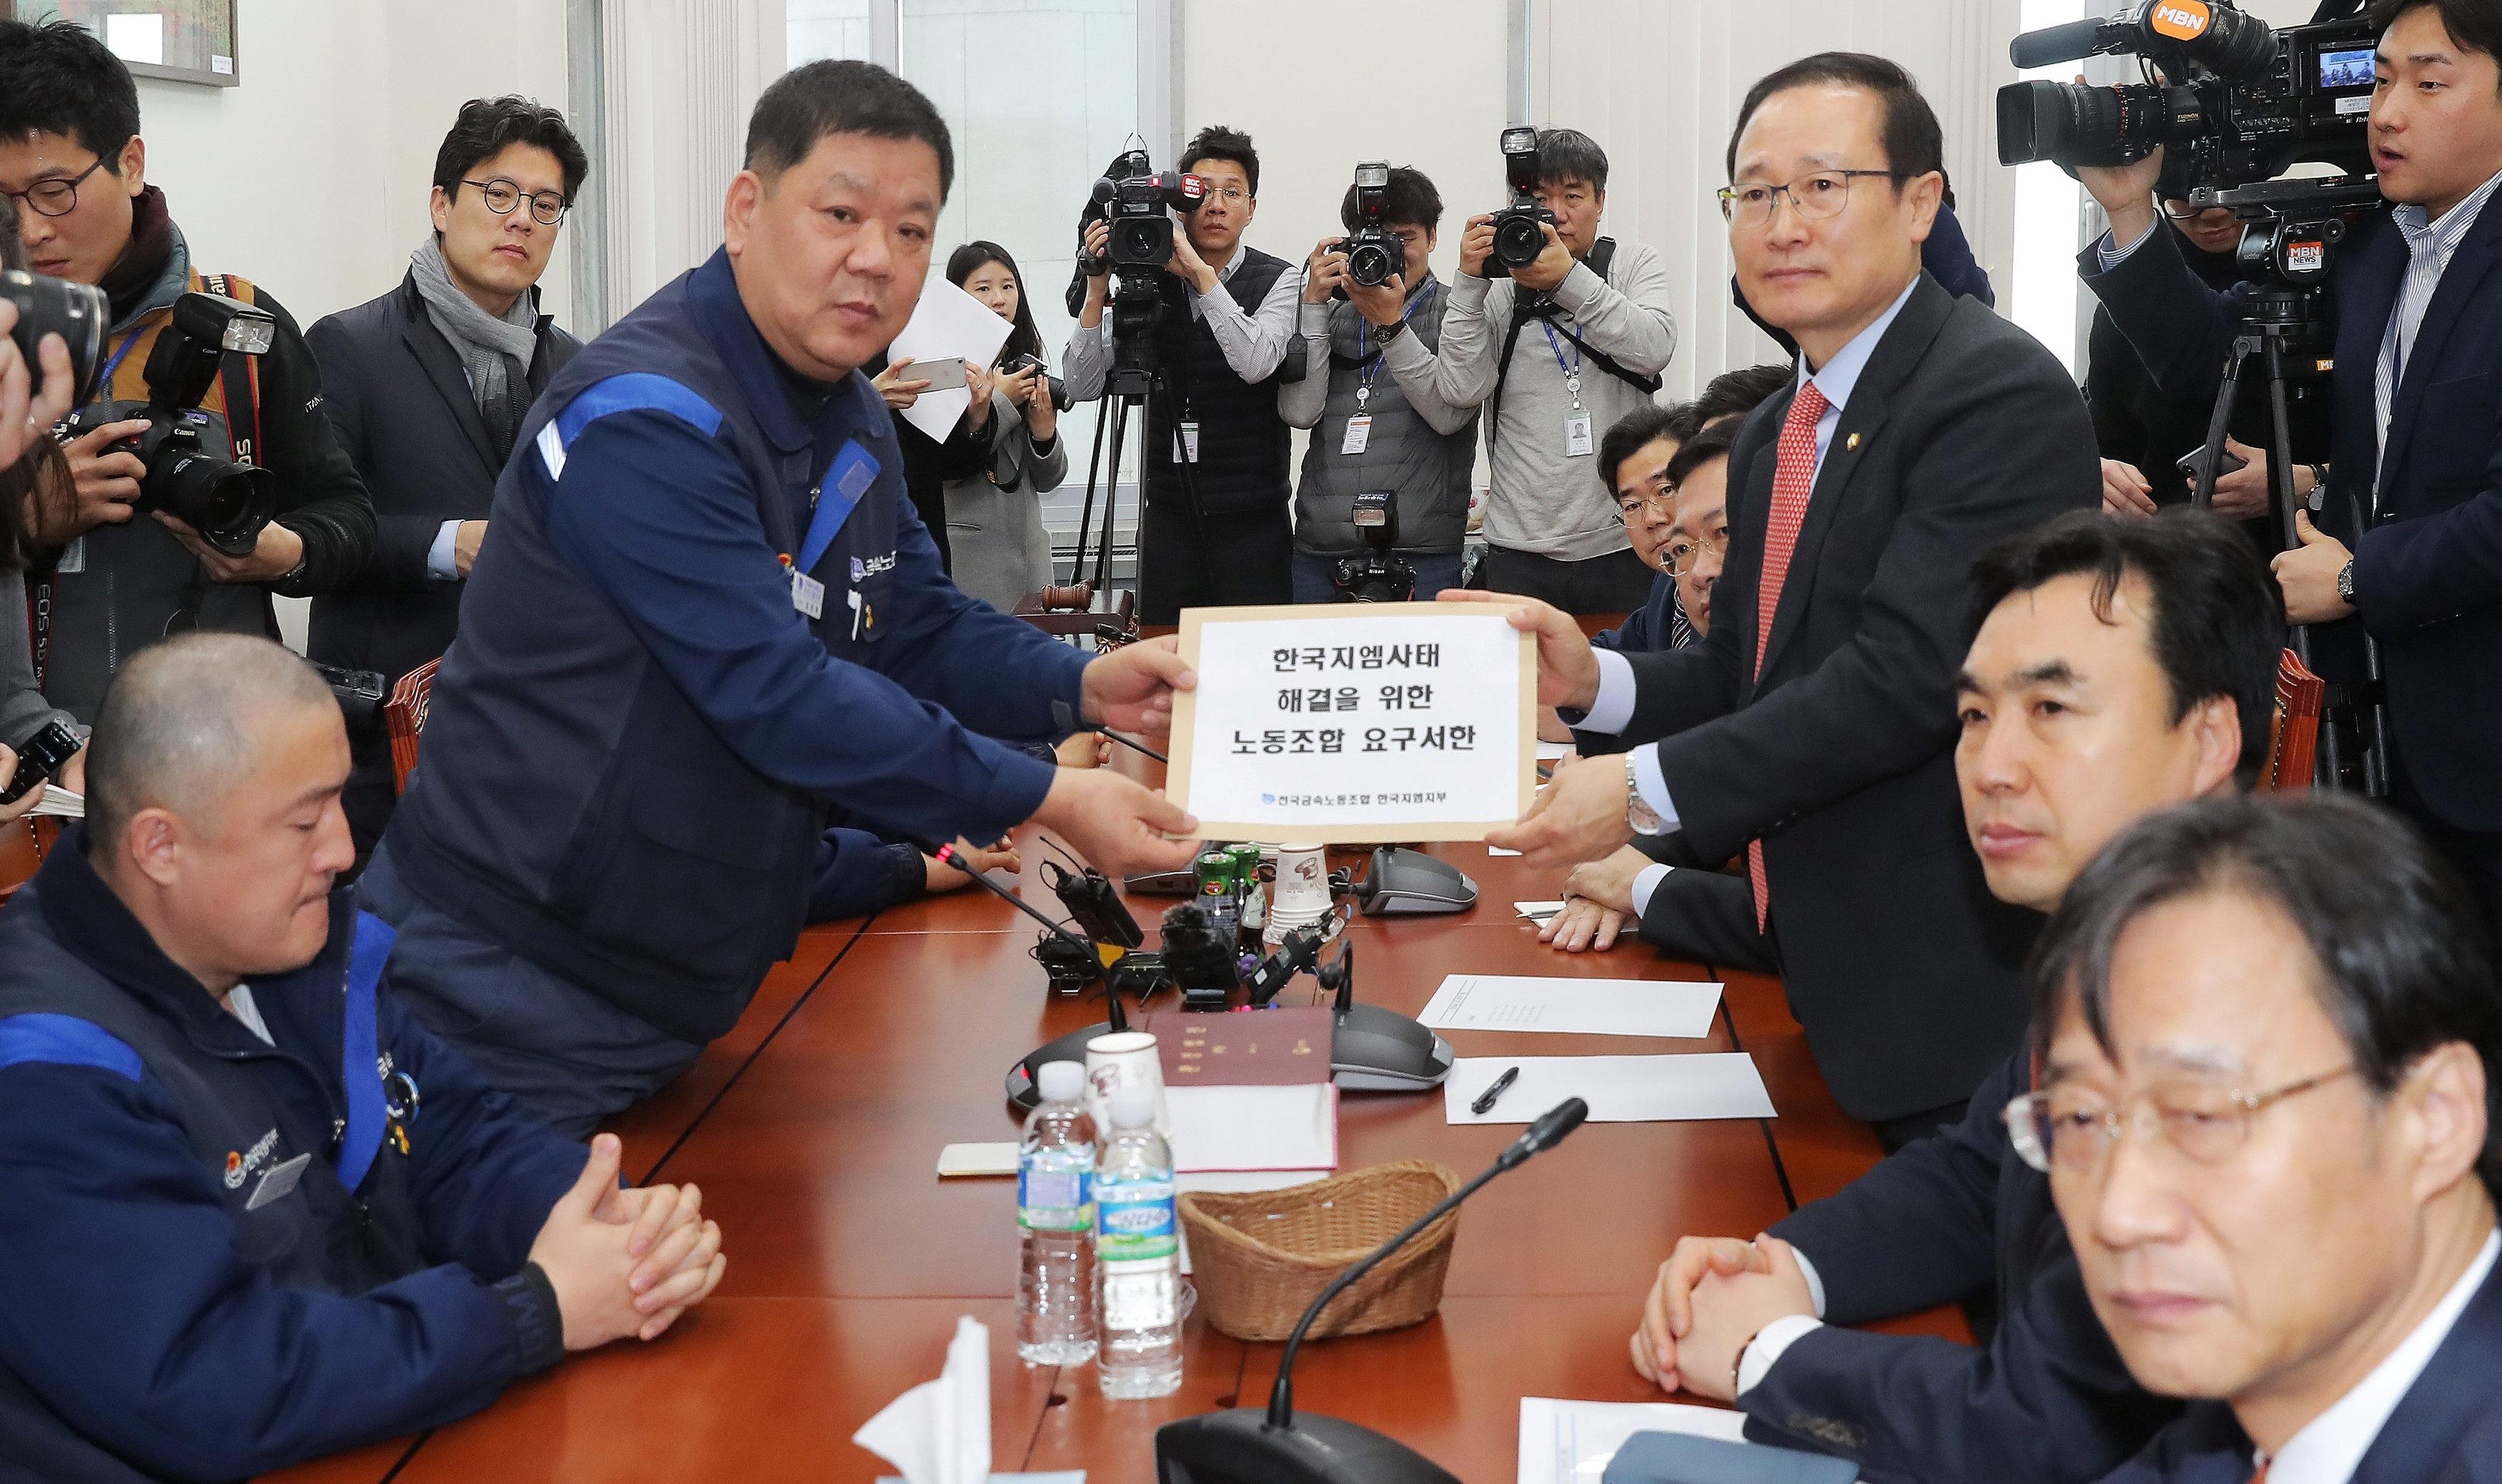 GM Korea's labour union leaders deliver a letter to Hong Young-pyo, a ruling party lawmaker from Bupyeong, where GM Korea's biggest factory is based, demanding the normalization of GM Korea's operation, in the National Assembly in Seoul, South Korea February 20, 2018.  Yonhap via